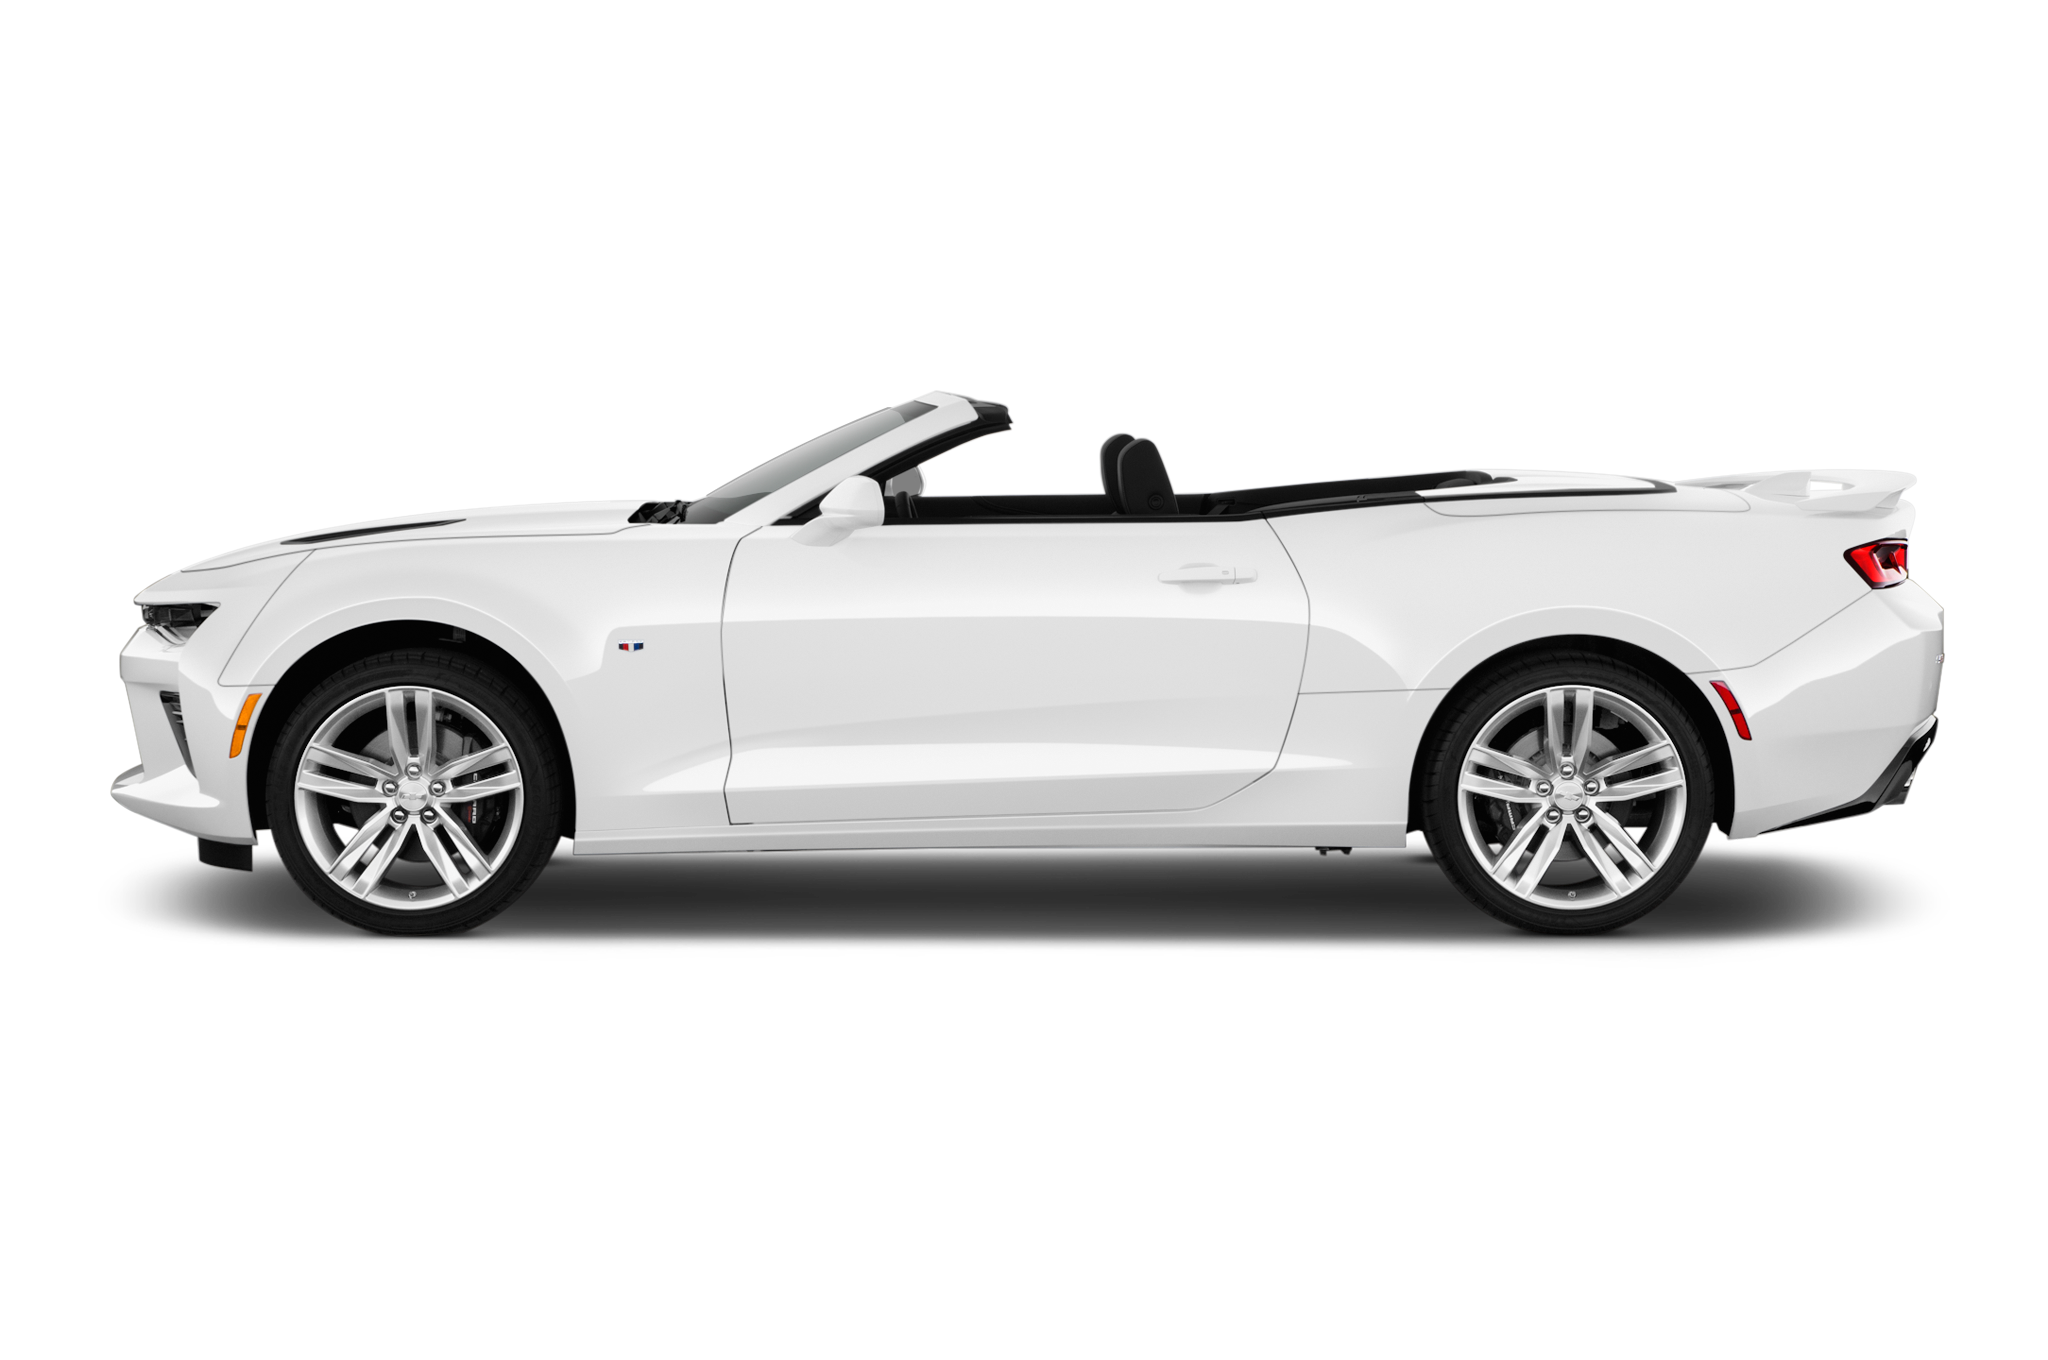 Chevy drawing side view. First drive chevrolet camaro